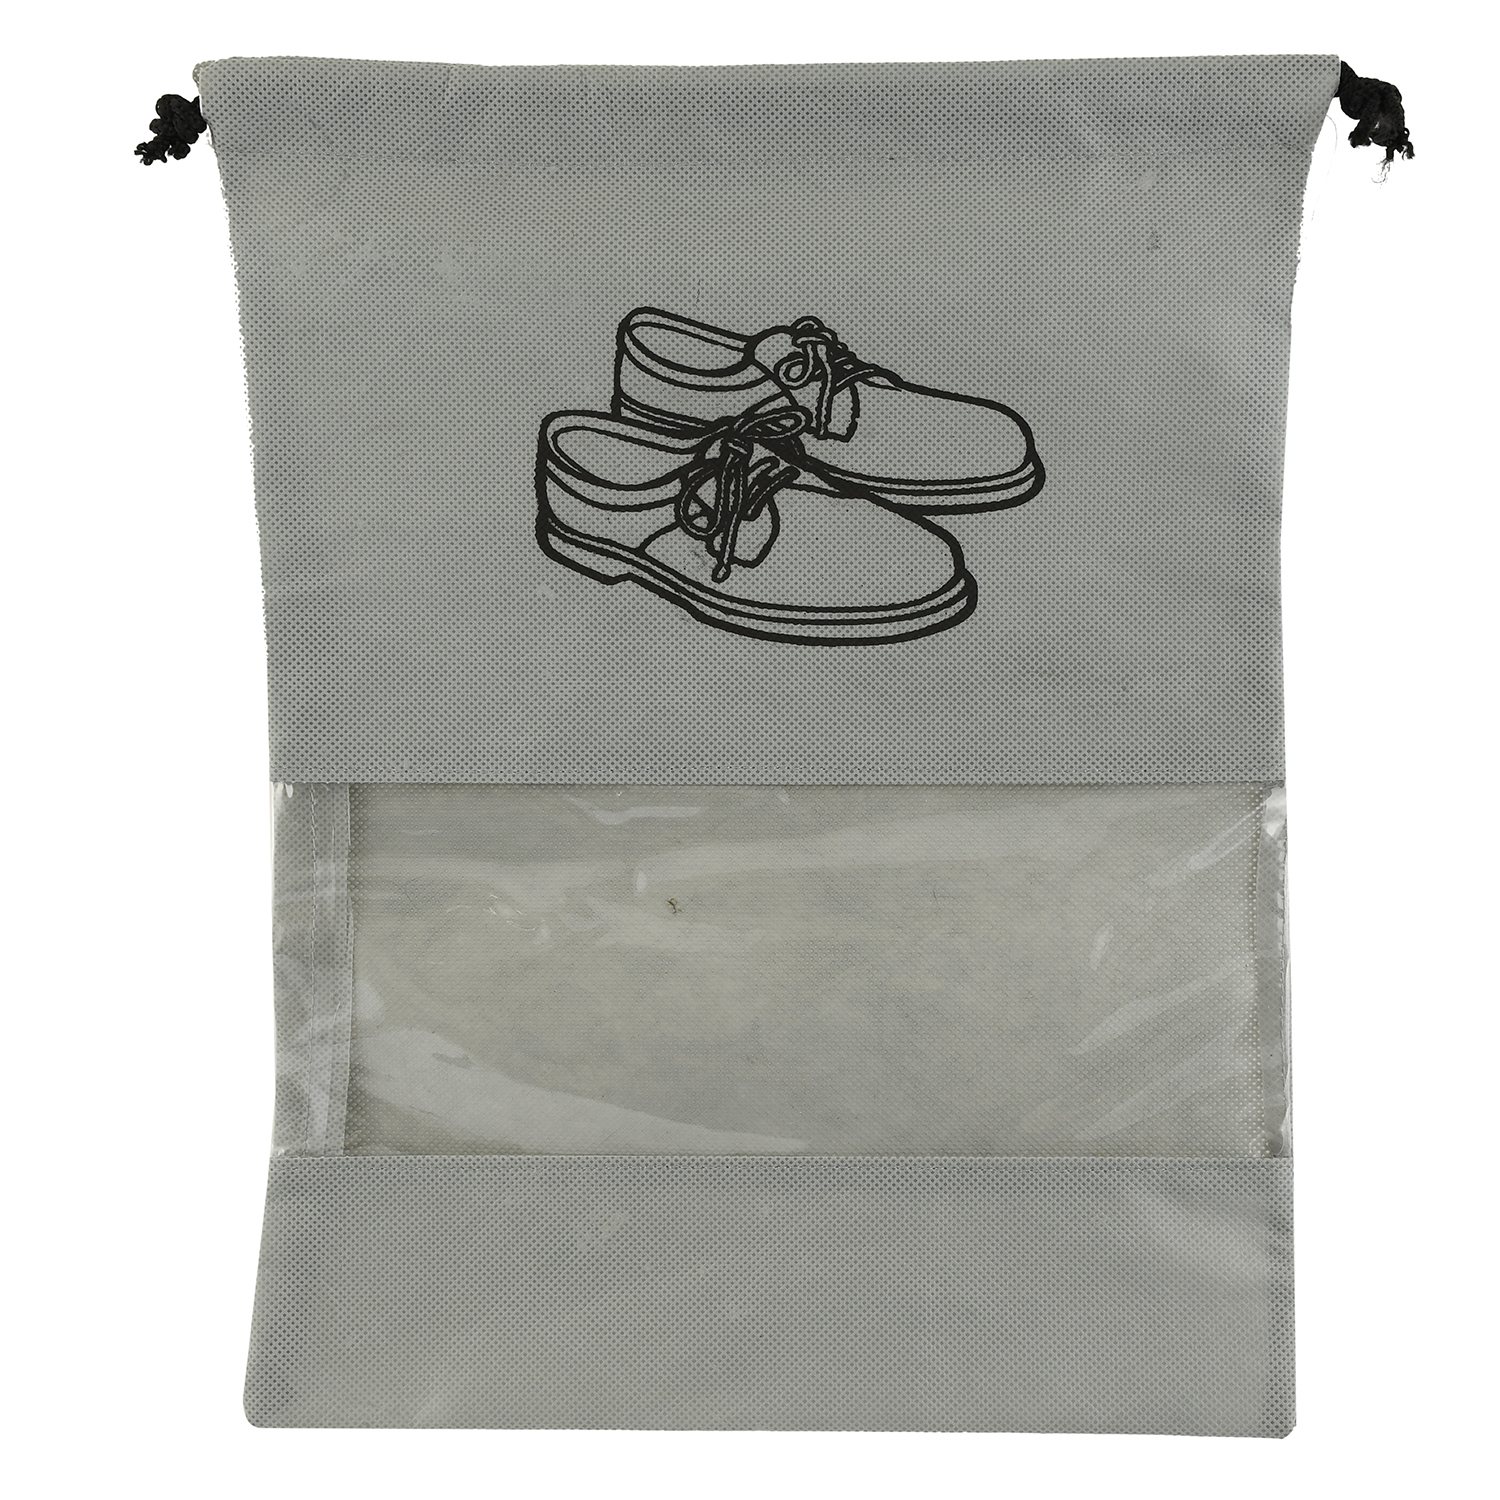 Kuber Industries 6 Piece Non Woven Travel Shoe Cover, String Bag Organizer, Grey -CTKTC39482